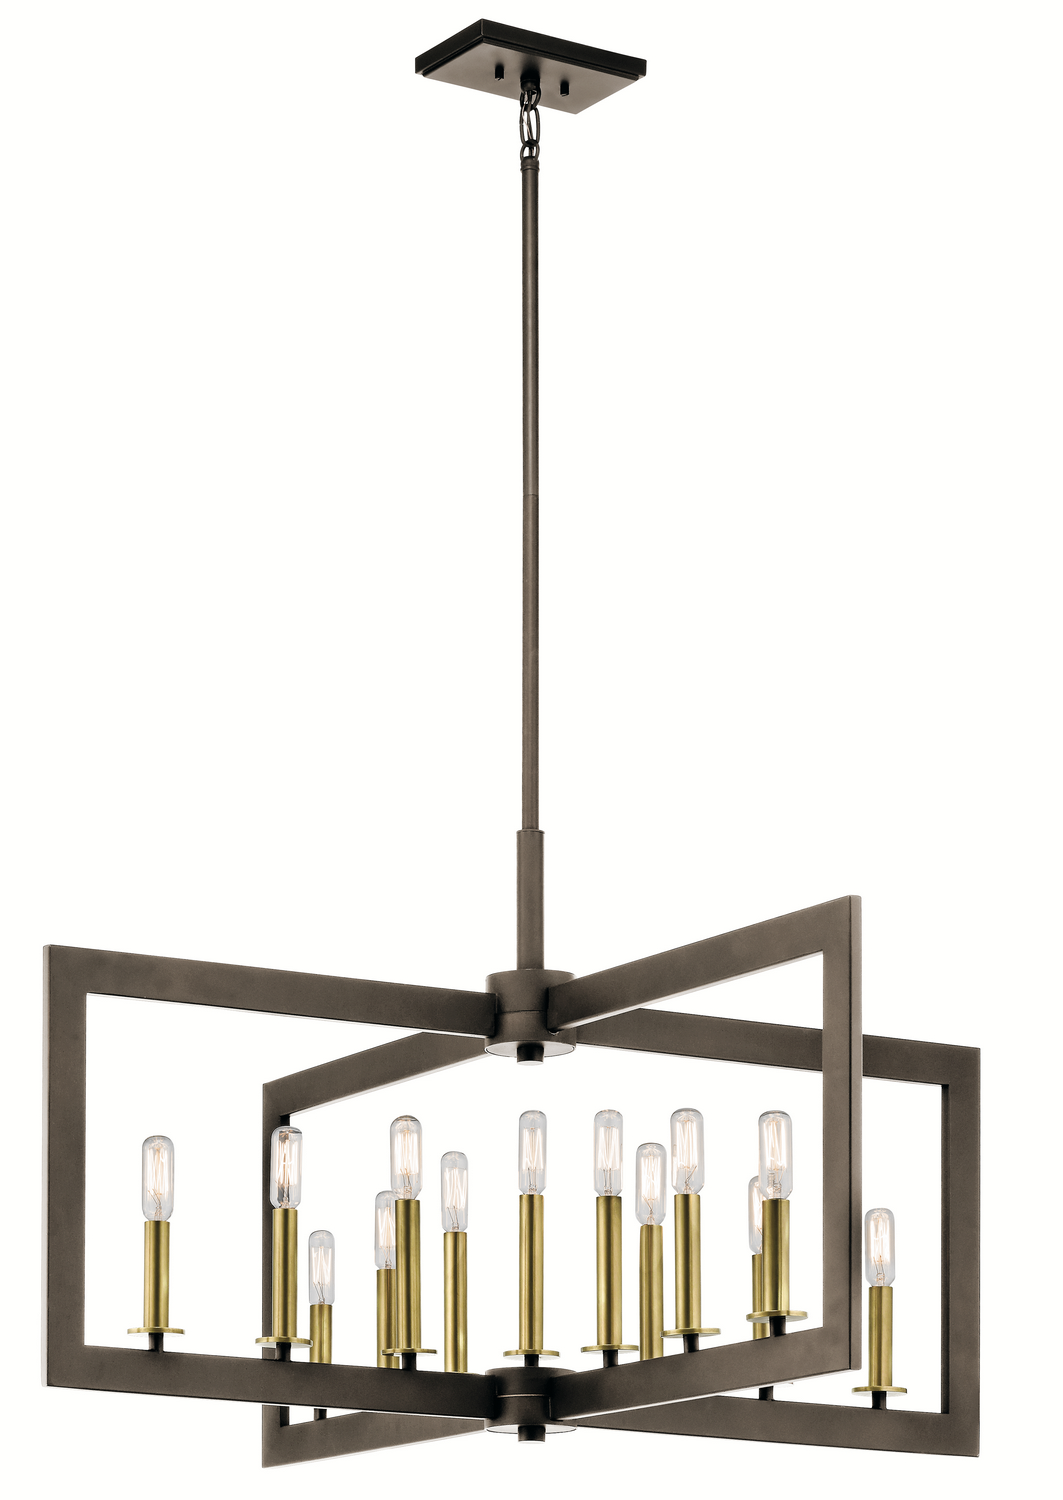 13 Light Linear Chandelier from the Cullen collection by Kichler 43901OZ